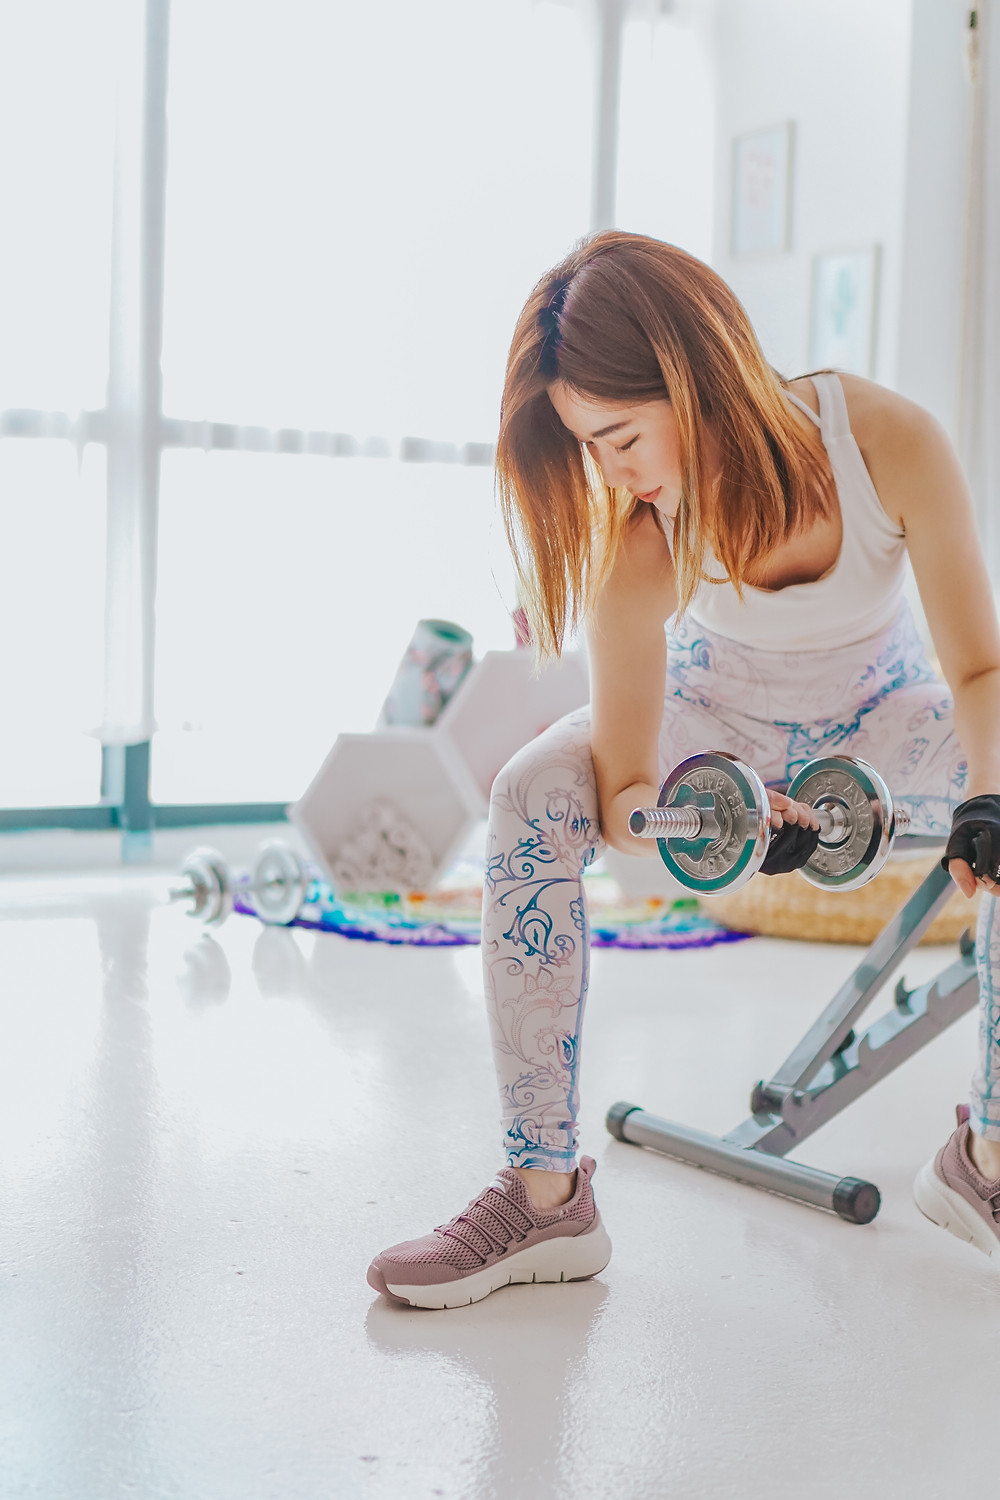 Does weight training make you bulky